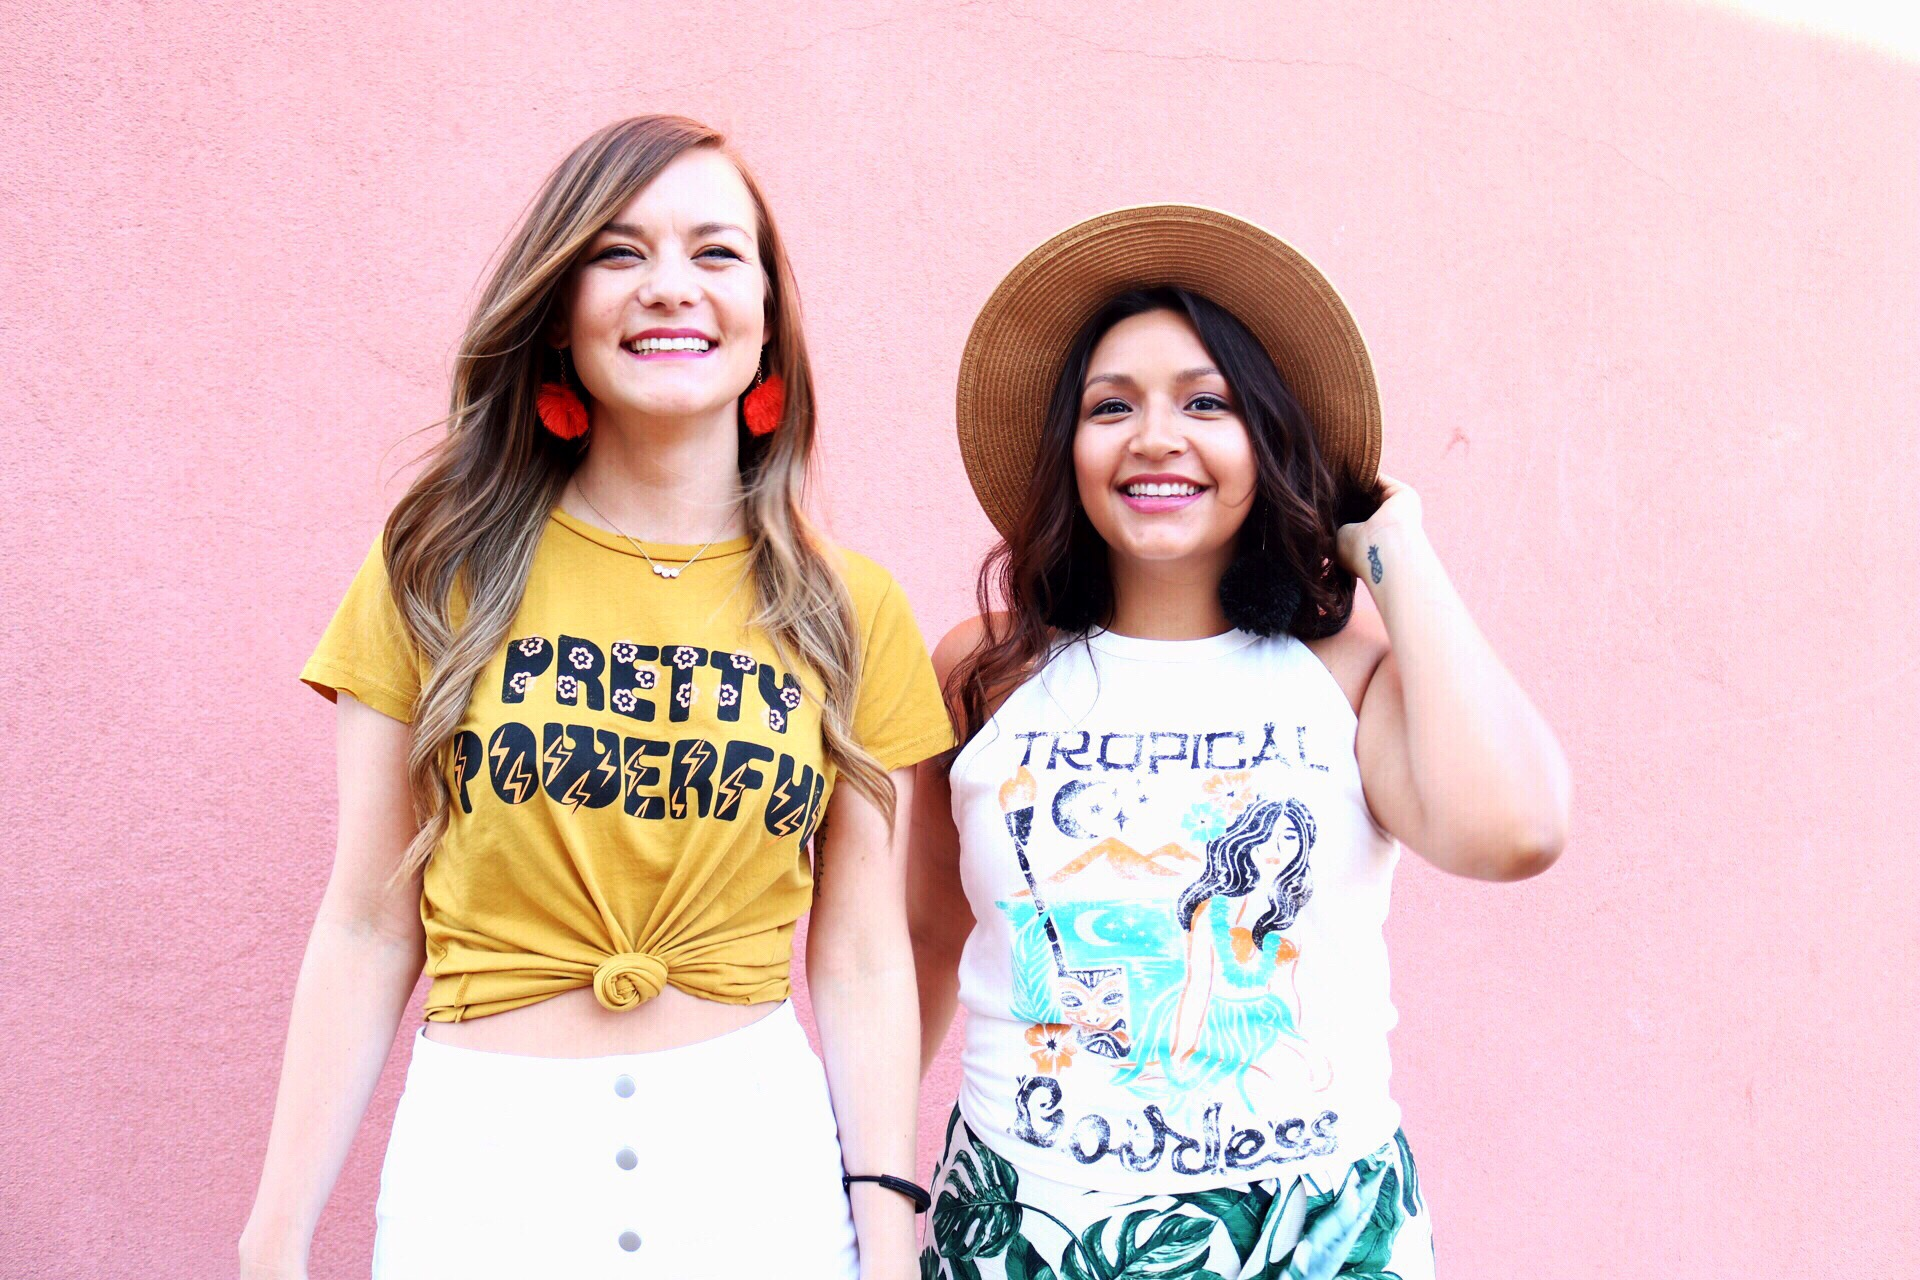 Pretty Powerful Tee/ Tropical Goddess Tank/ Graphic Tees by Dazey L.A.